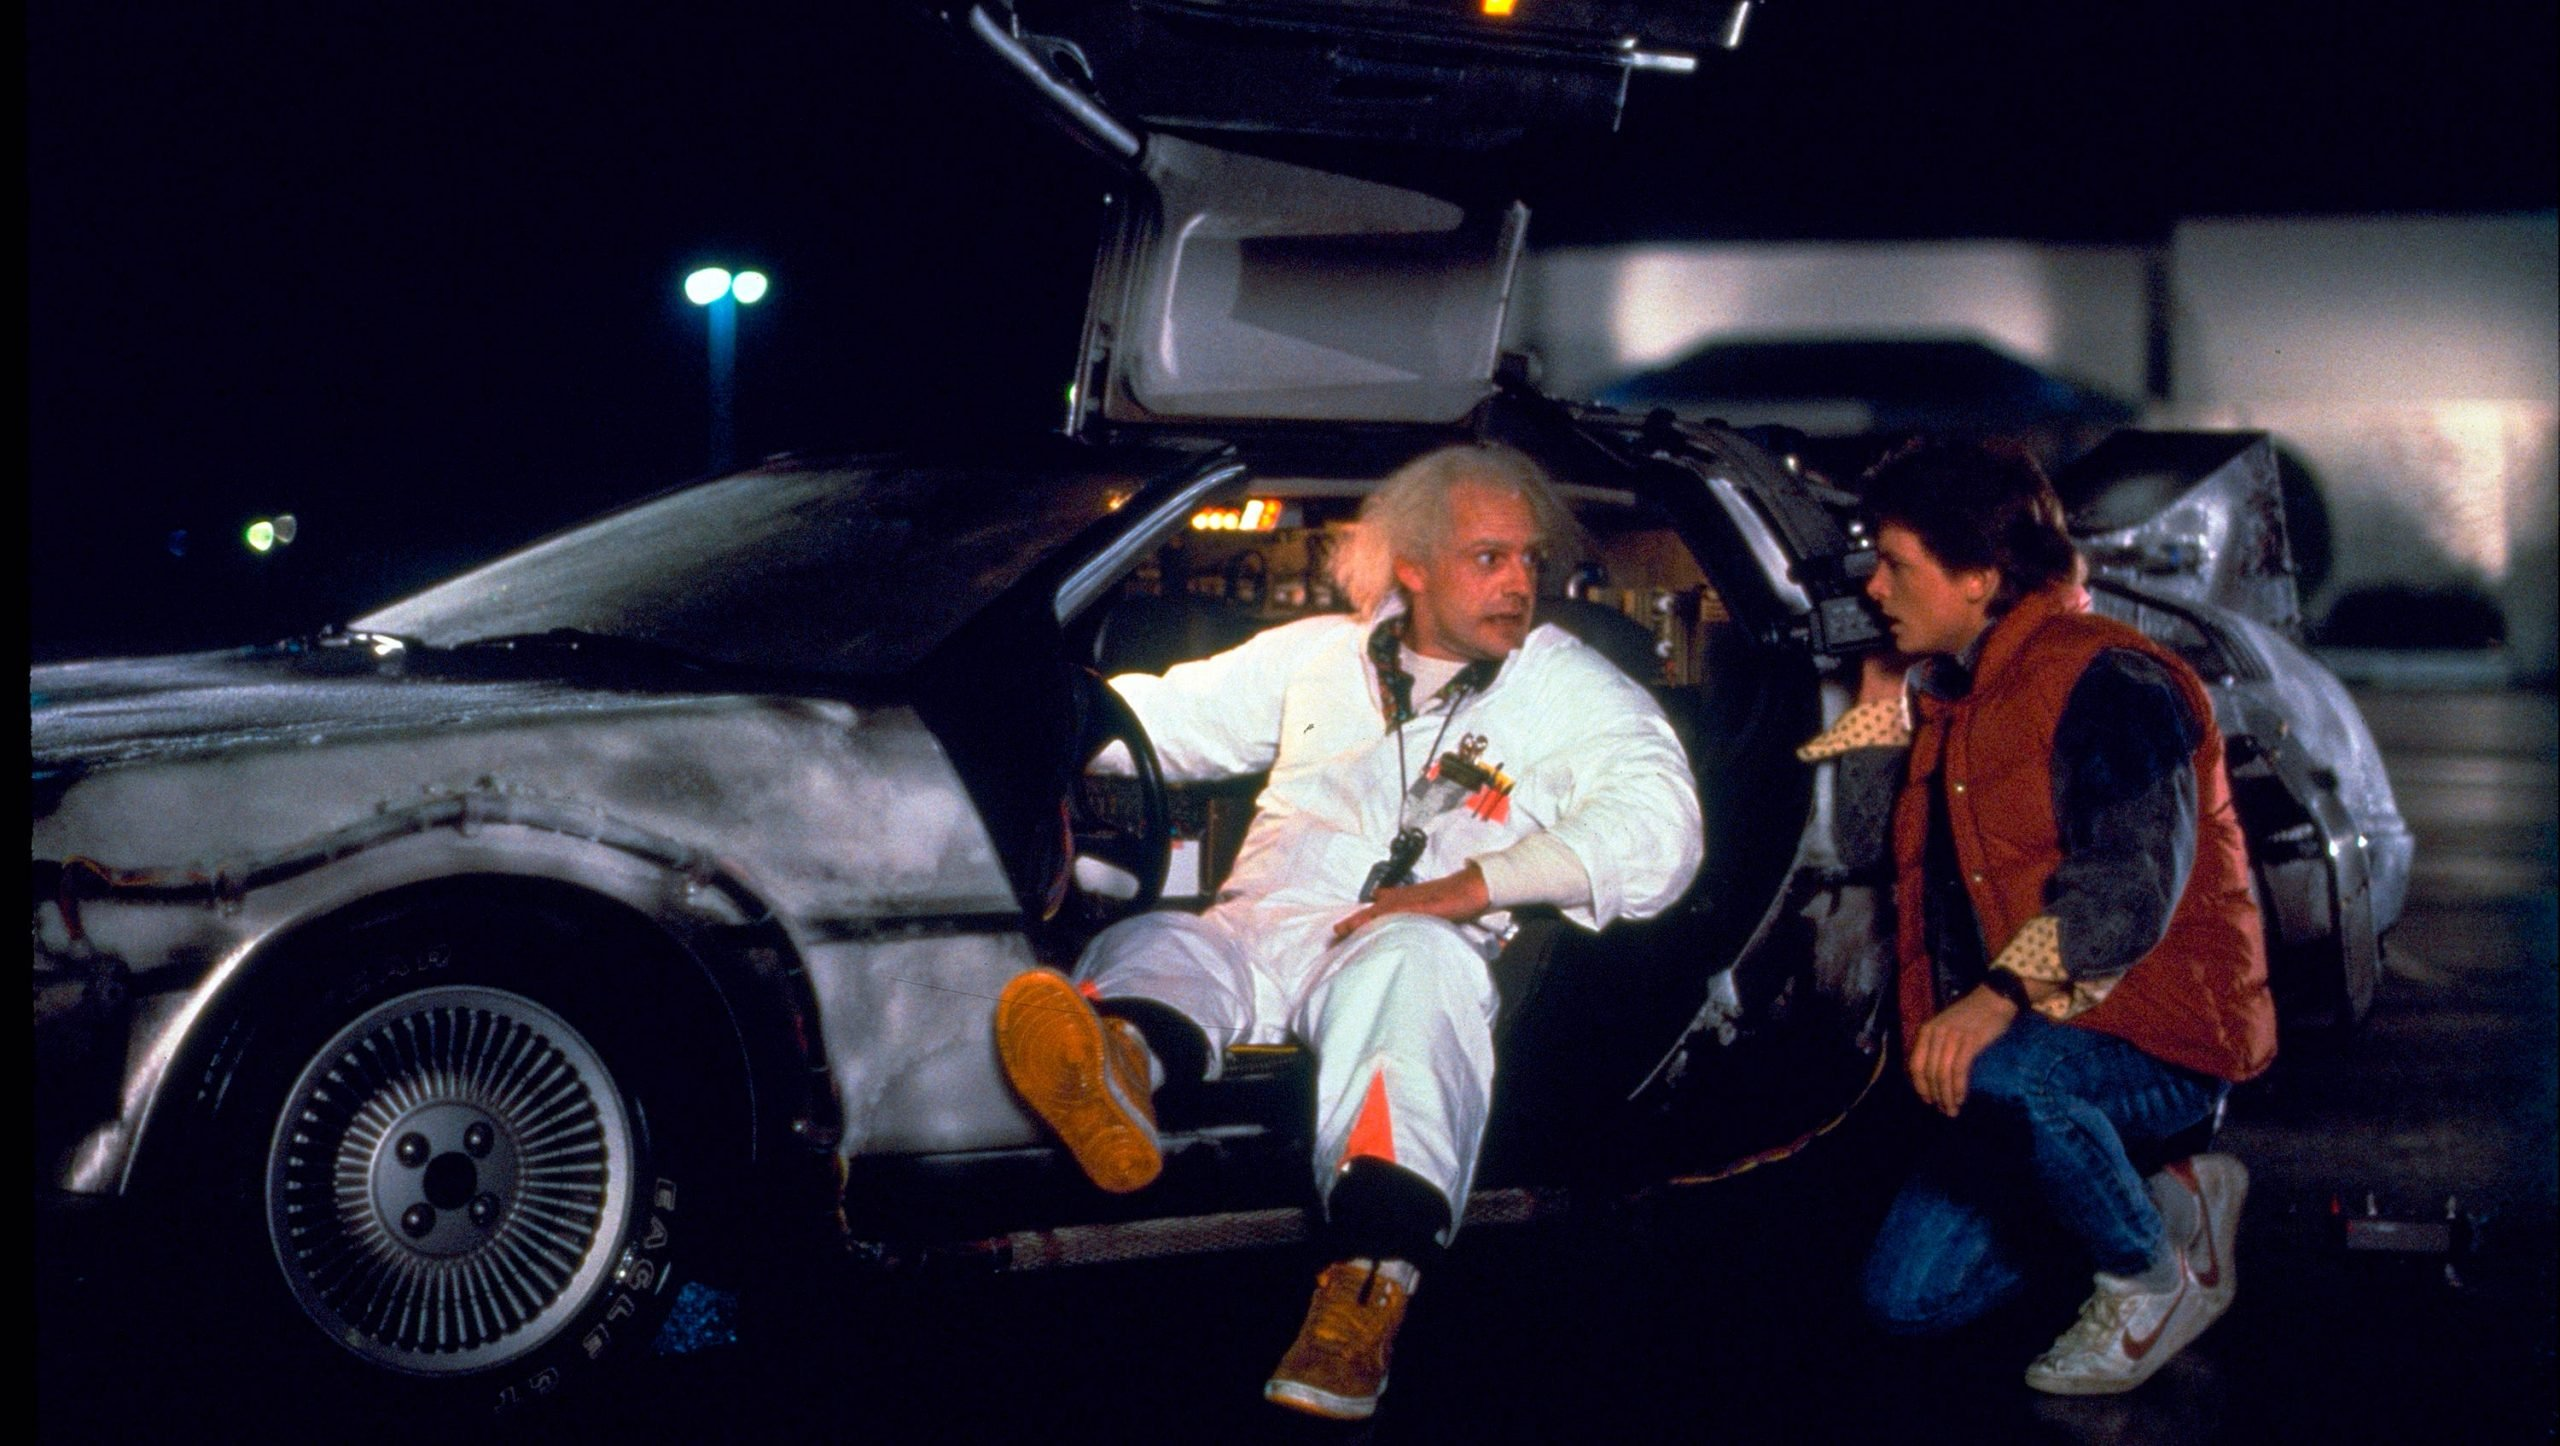 Back to the Future DeLorean scaled DeLorean: The Strange Story Behind The Iconic 80s Sports Car And Its Creator